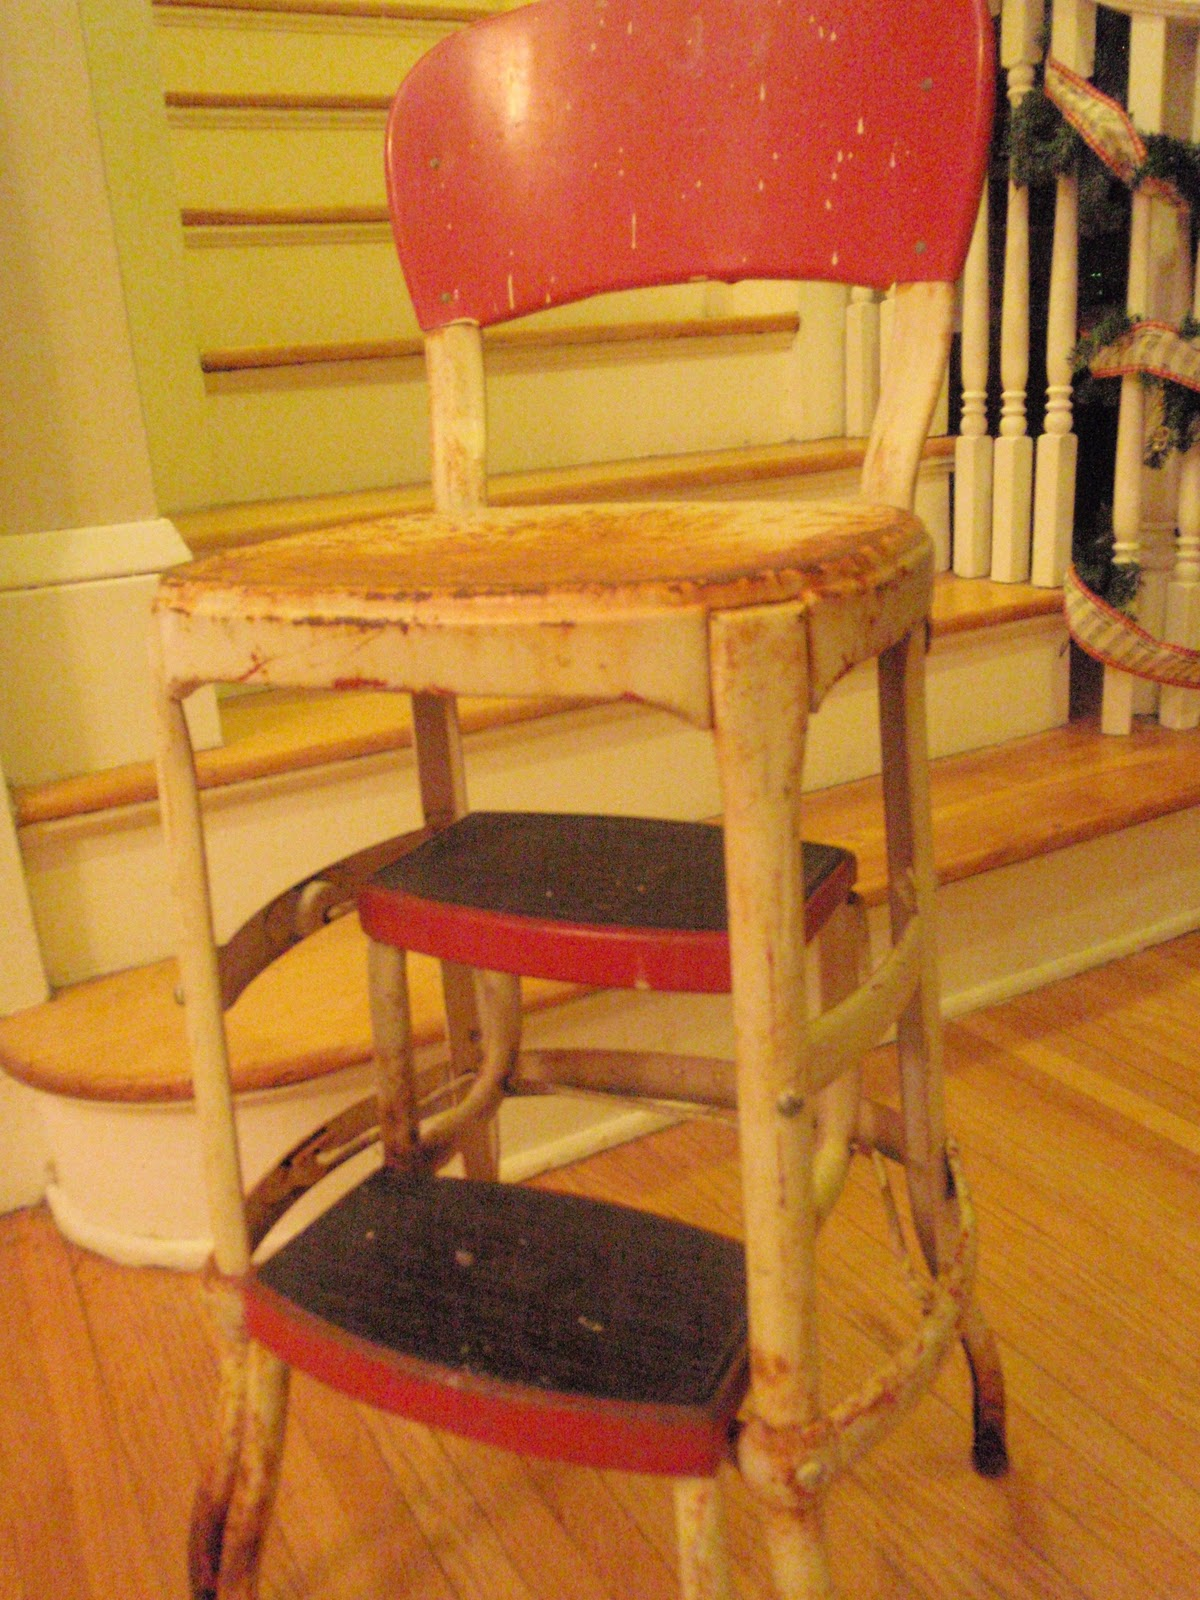 Antique metal high chair - Here S A Gratuitous Close Up Of Just How Badly Rusted It Is Don T Worry I Recently Had A Tetanus Booster Ha